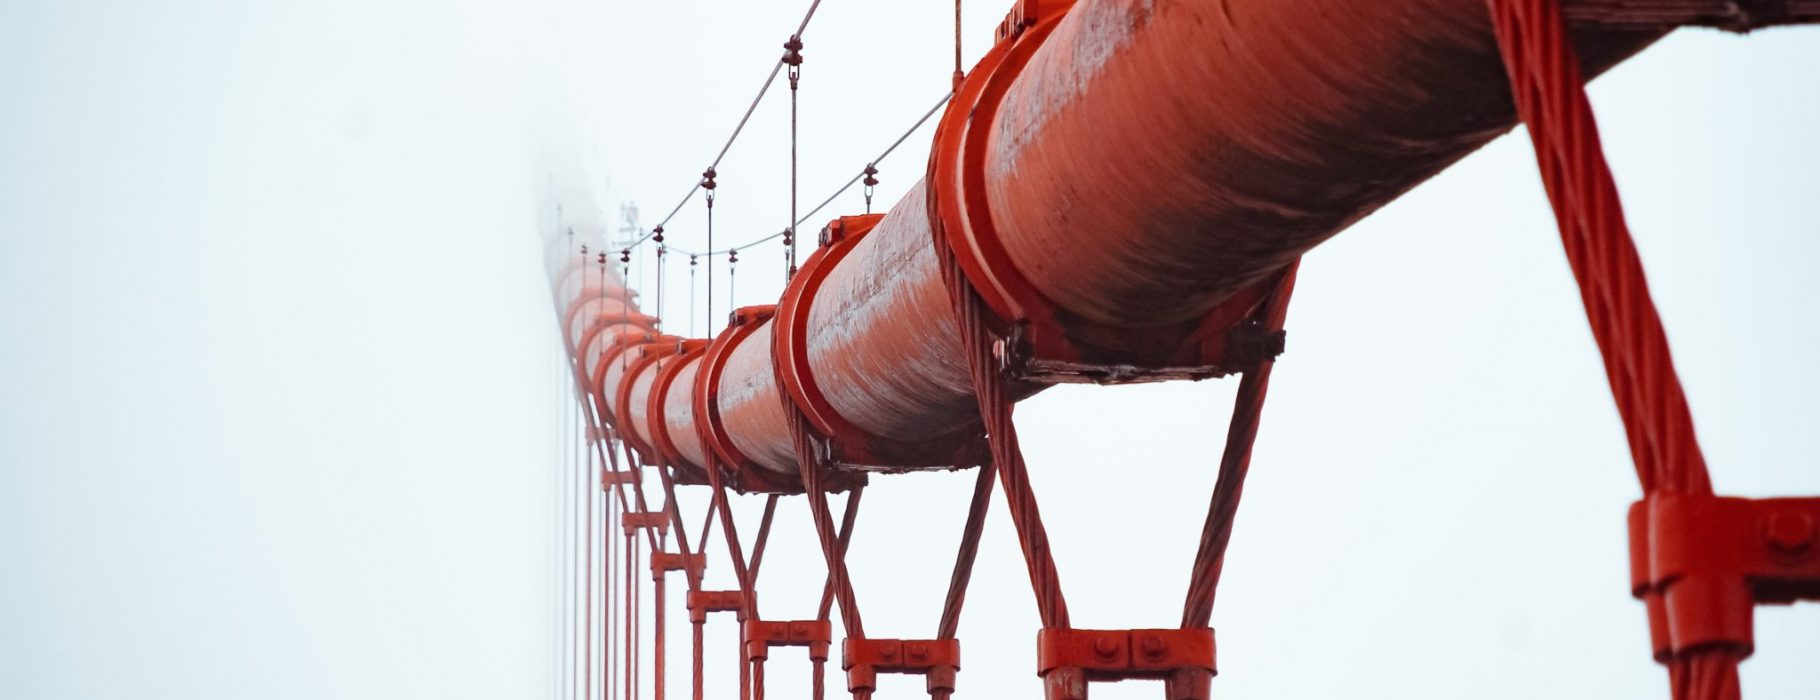 A red pipeline, upheld by a bridge of metal cables, fades into the white mist. Photo by JJ Ying on Unsplash